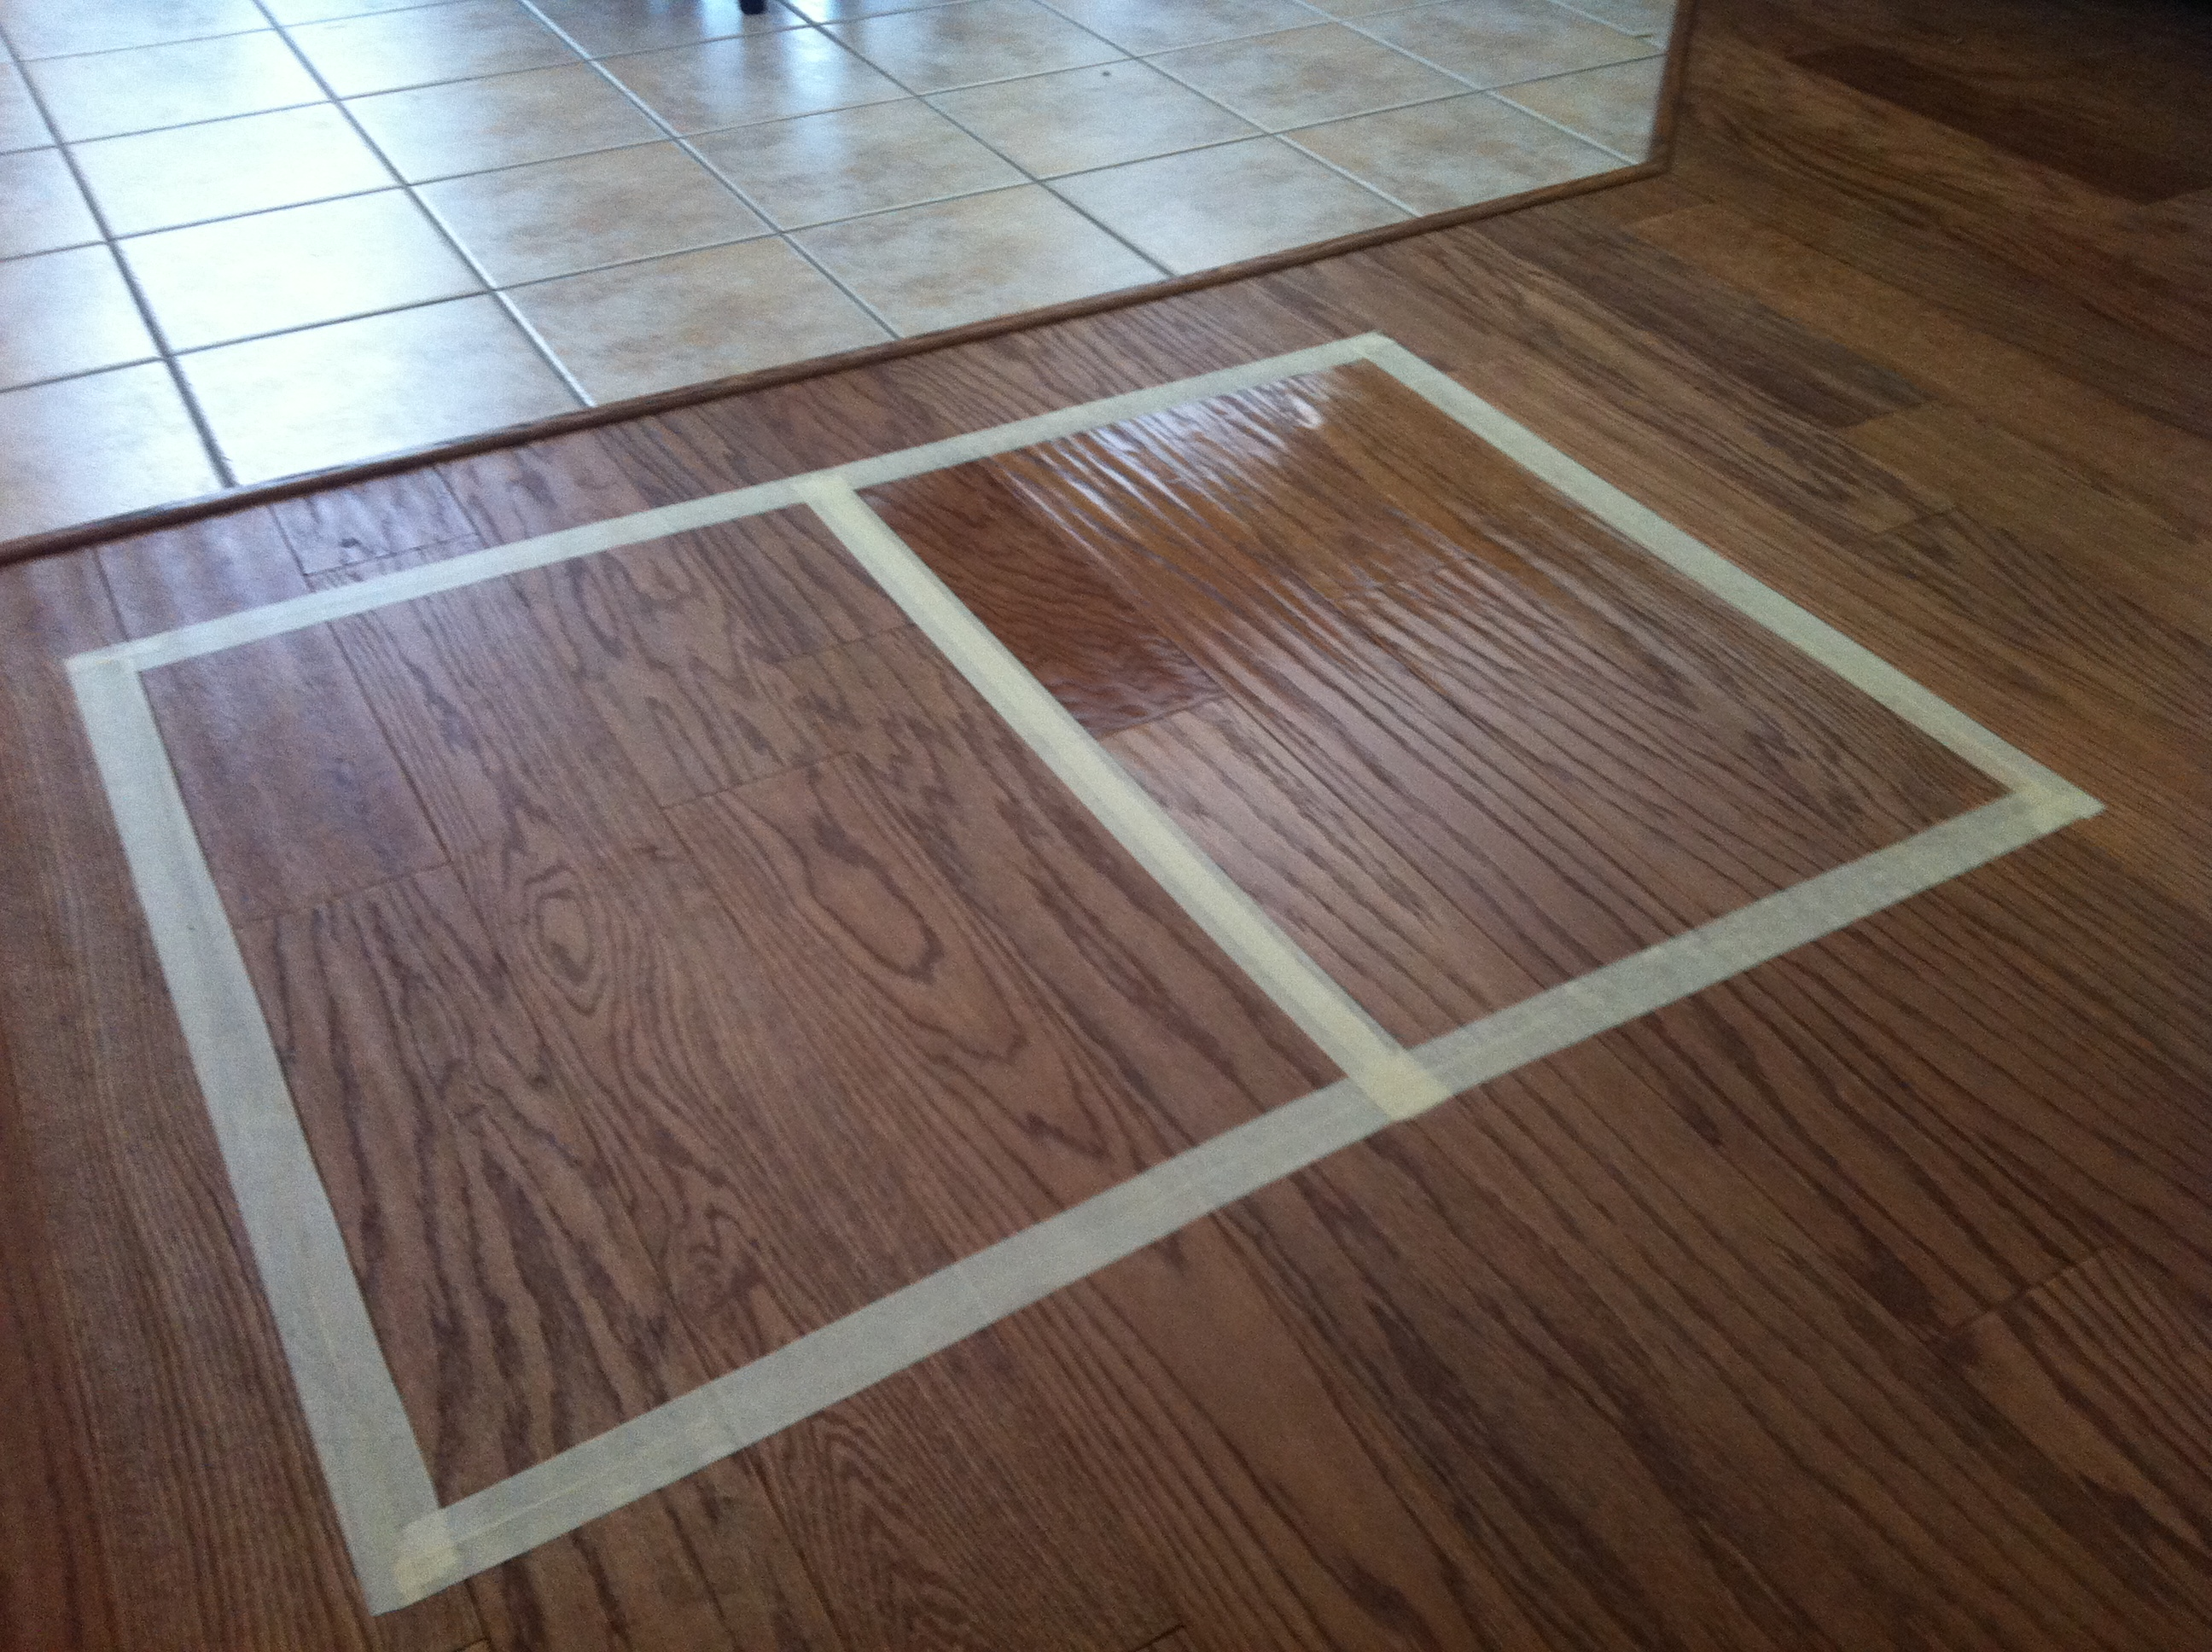 Hardwood floors clean rejuvenate before after Rejuvenate wood floor